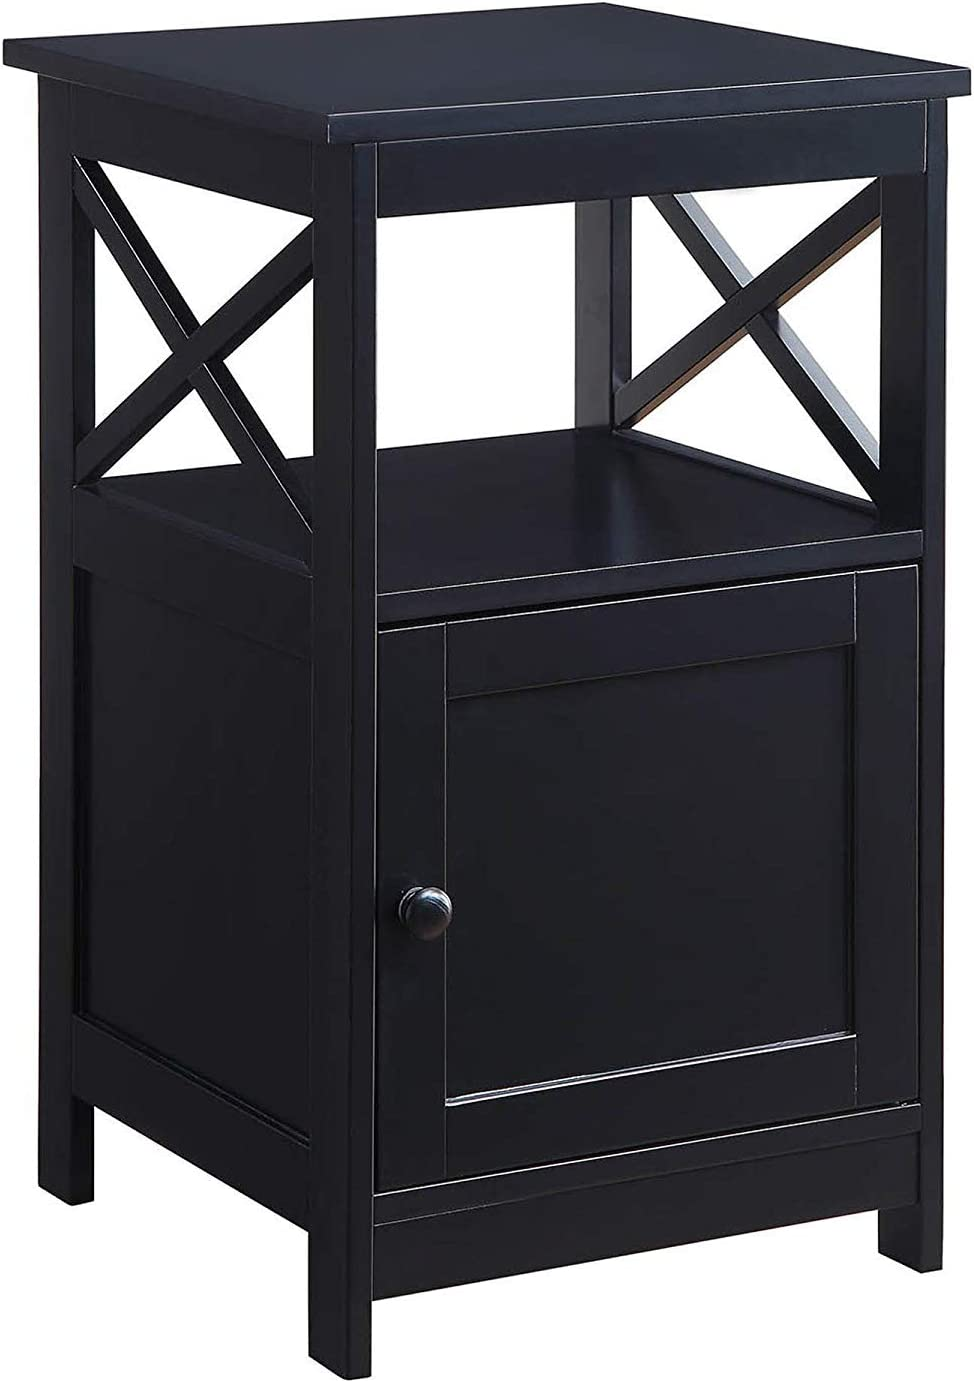 Convenience Concepts Oxford End Table with Cabinet, Black